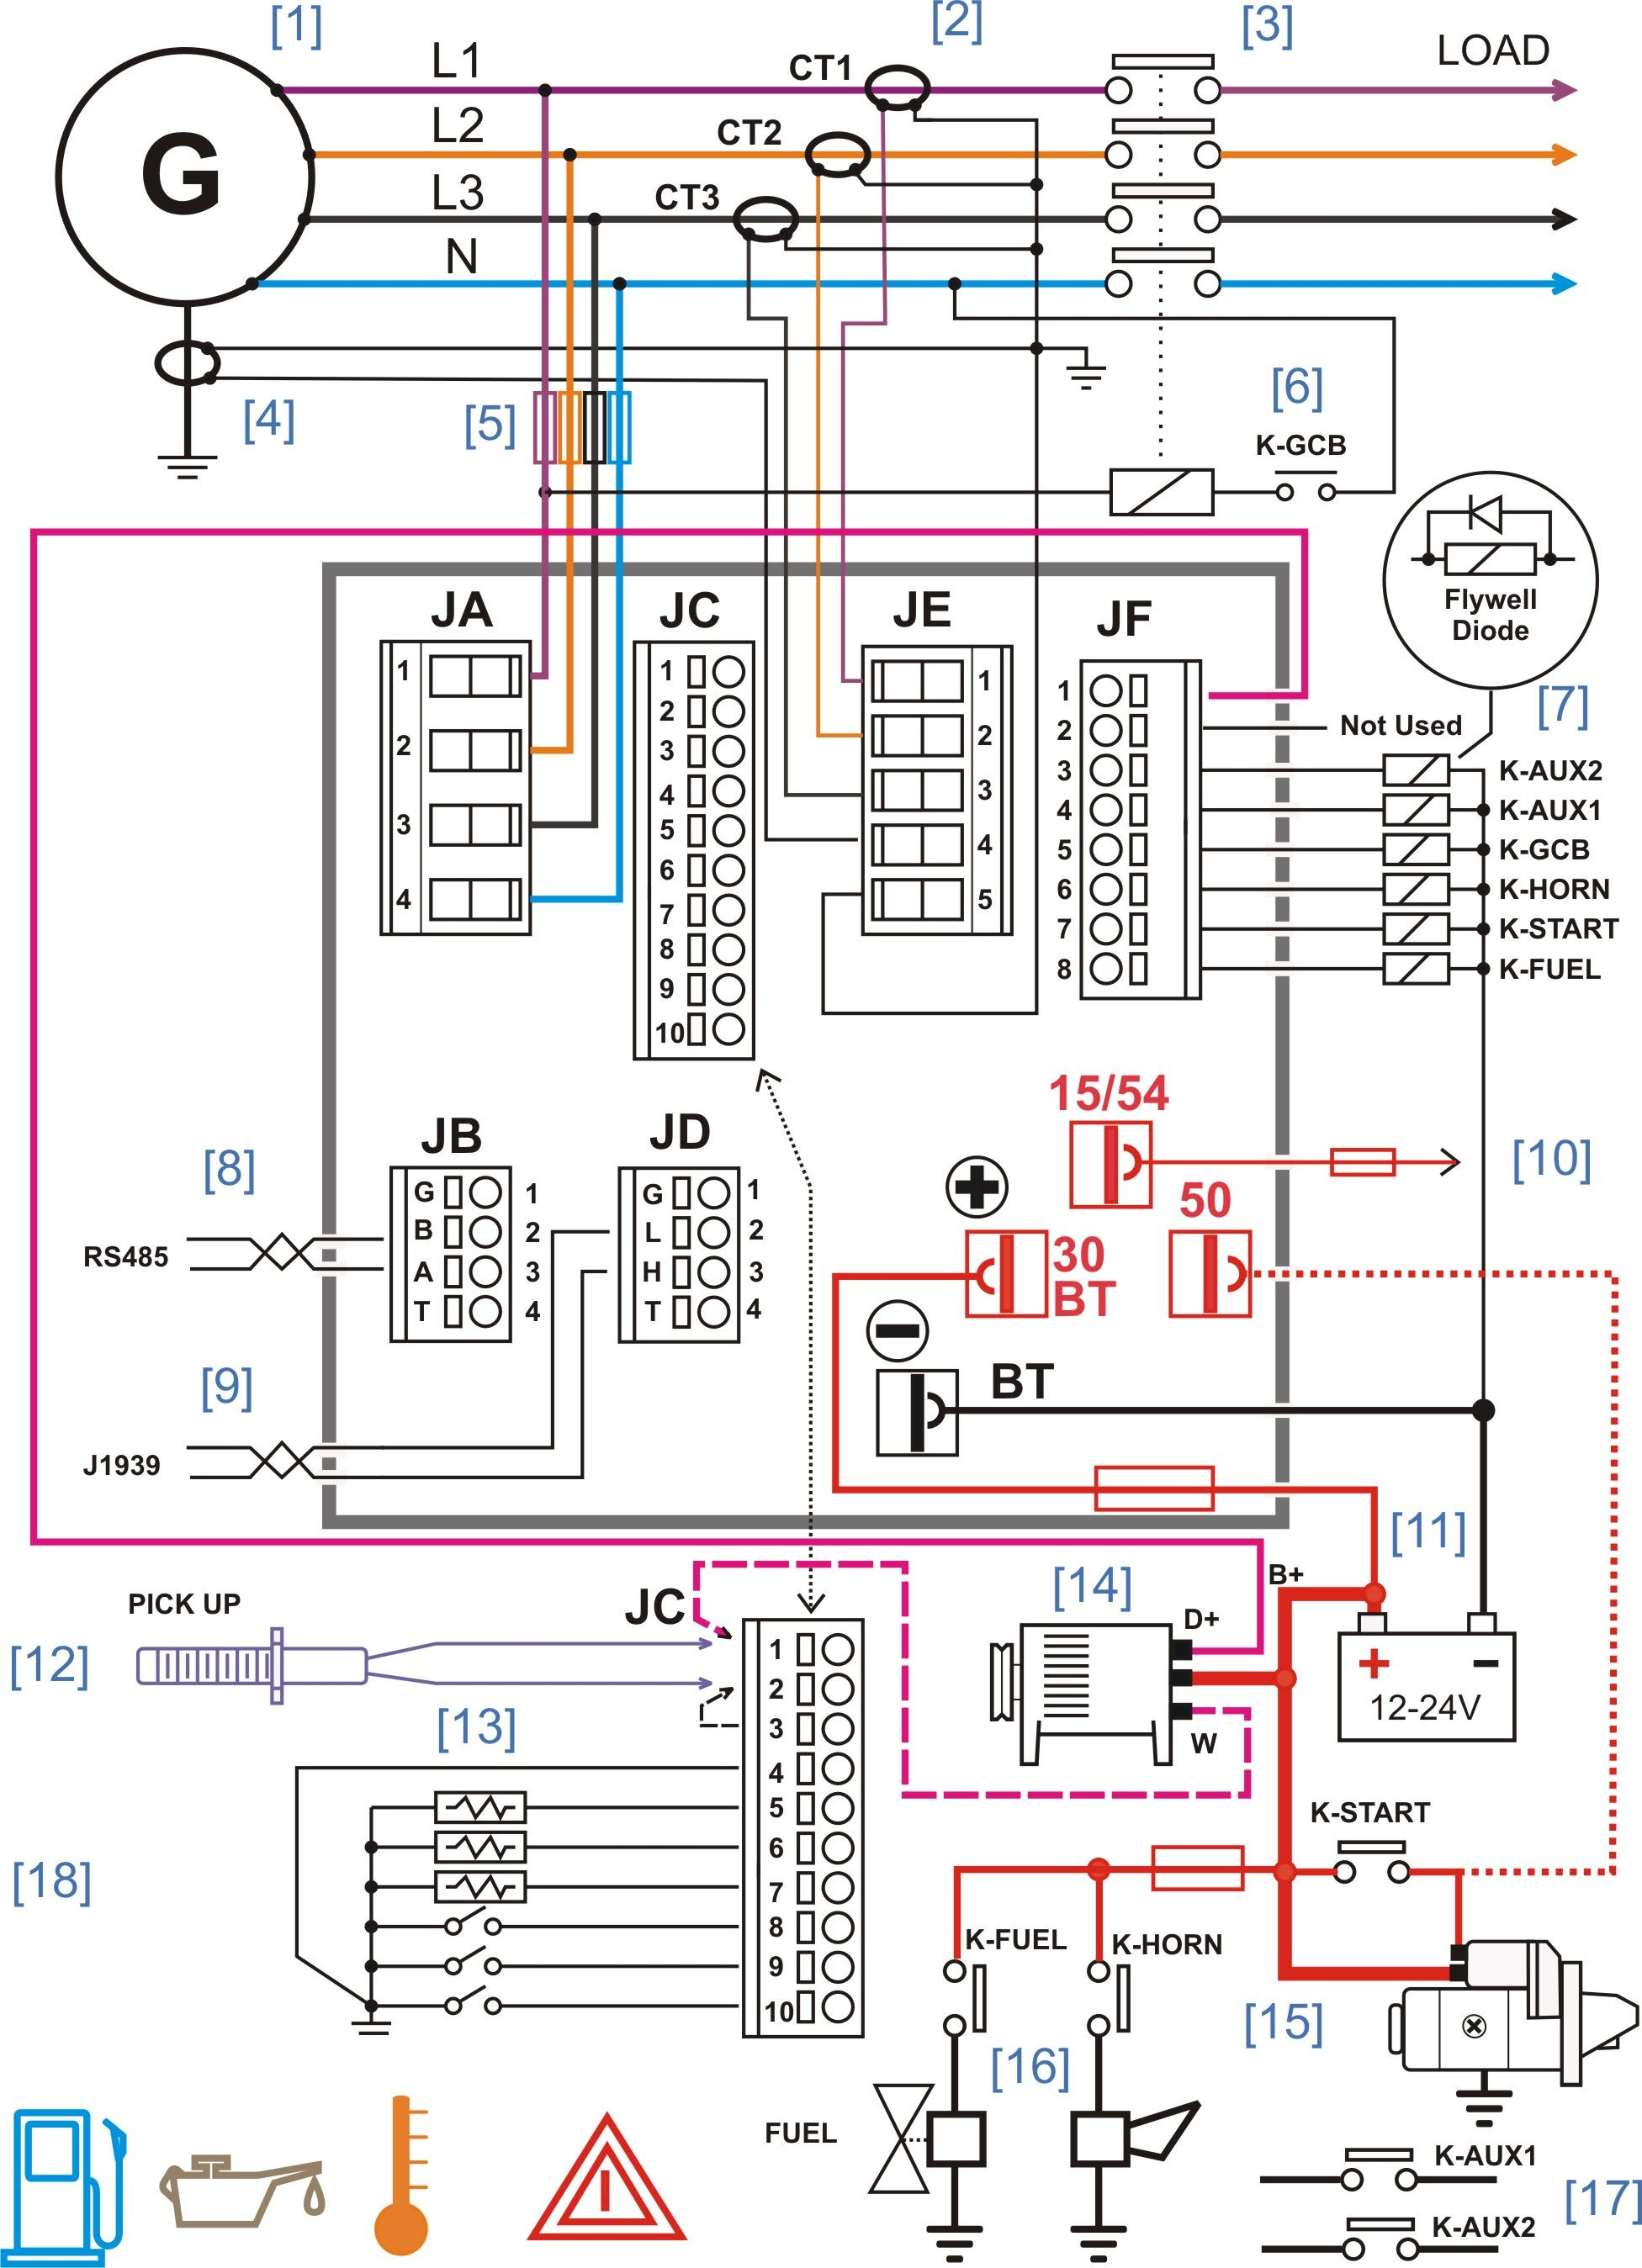 Single Phase Water Pump Control Panel Wiring Diagram How Do You Draw A Family Tree Diesel Generator